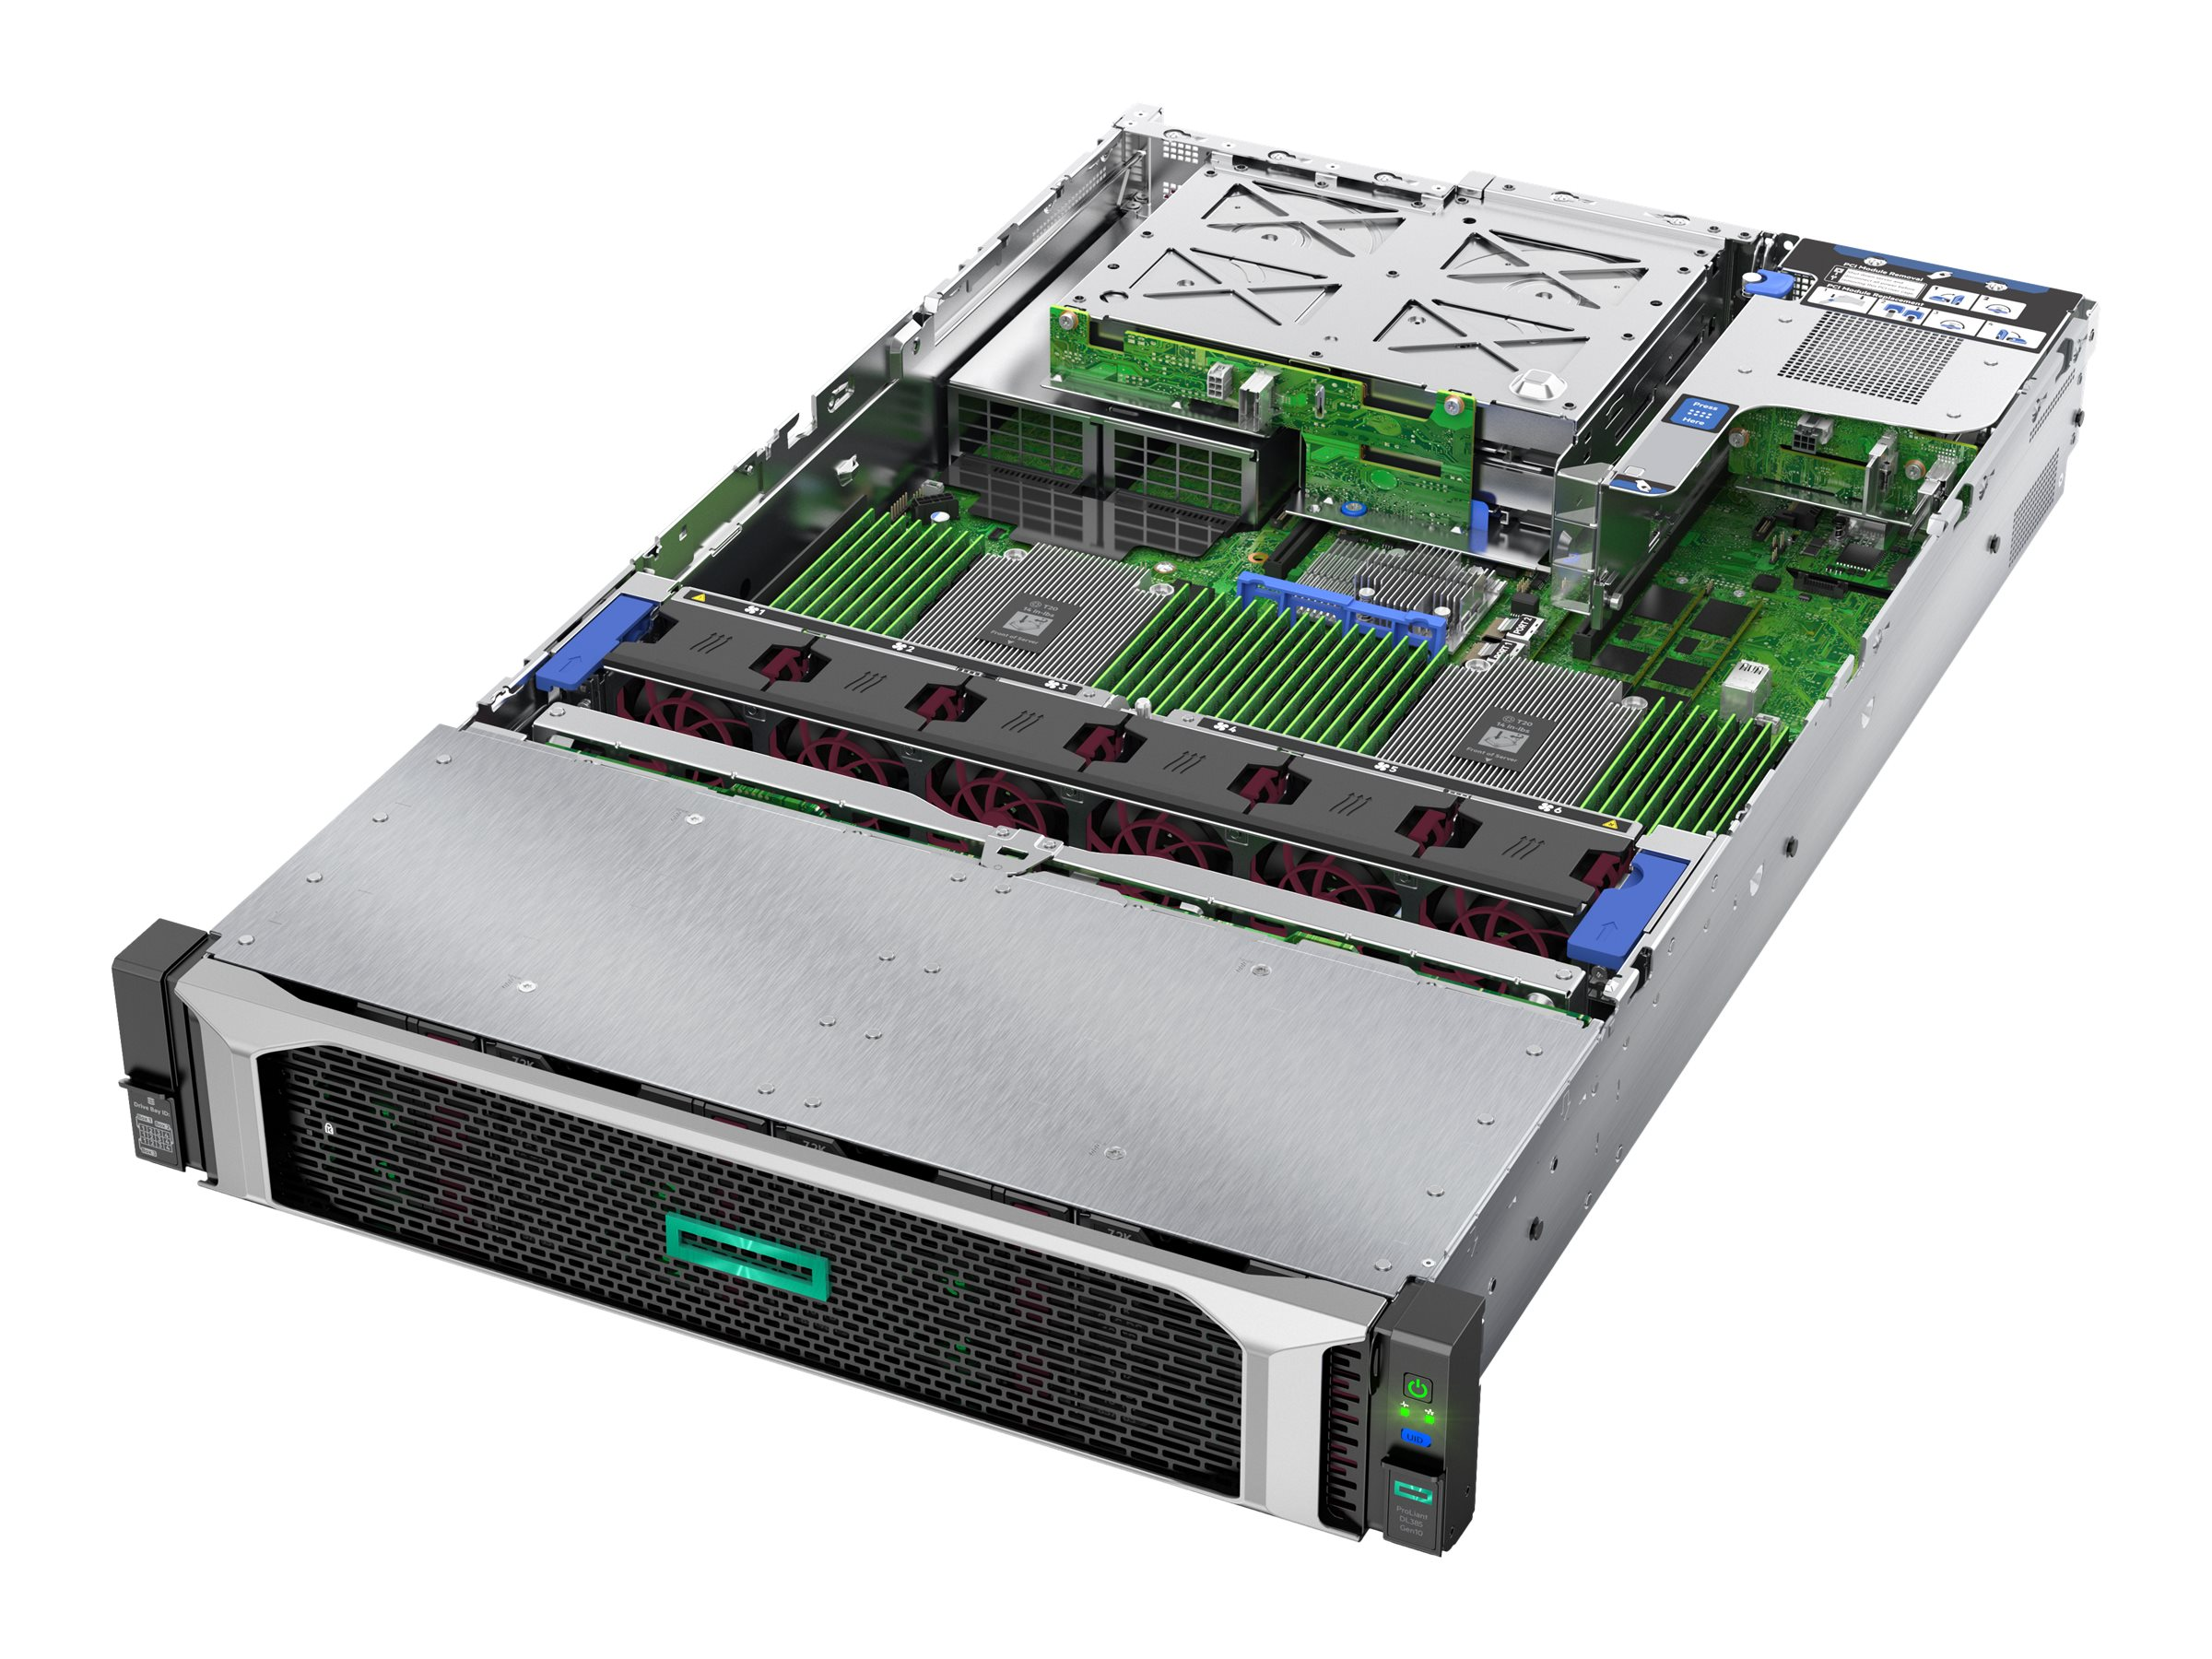 HPE ProLiant DL385 Gen10 Base - Server - Rack-Montage - 2U - zweiweg - 1 x EPYC 7551 / 2 GHz